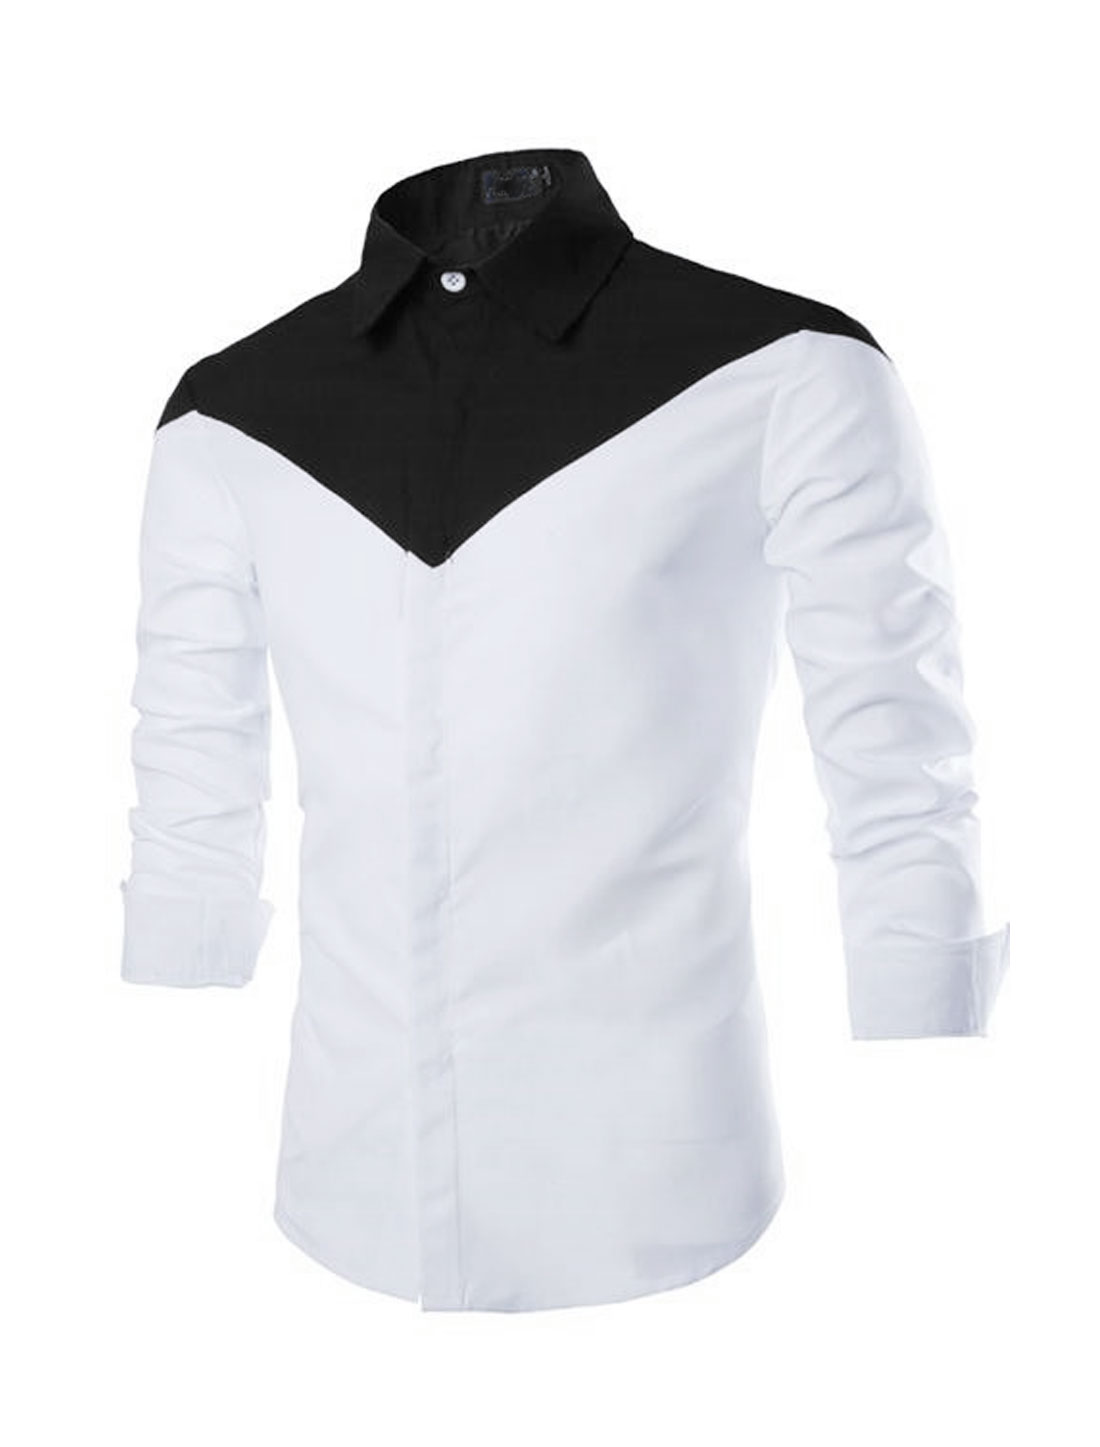 Men Button-up fitted Long Length Shirts White Blacks S